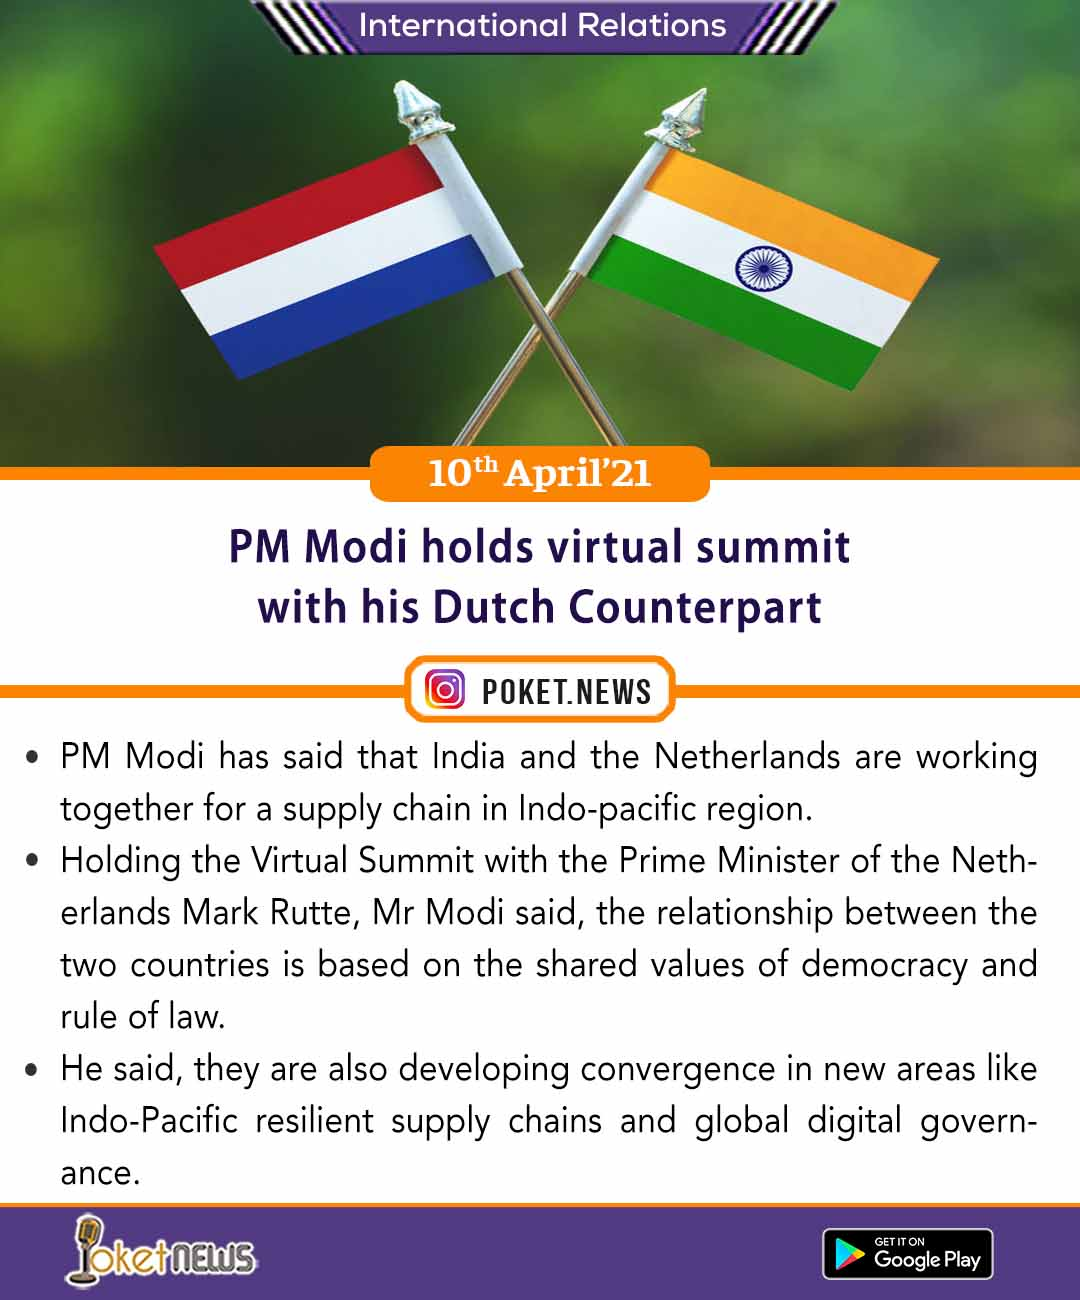 PM Modi holds virtual summit with his Dutch Counterpart